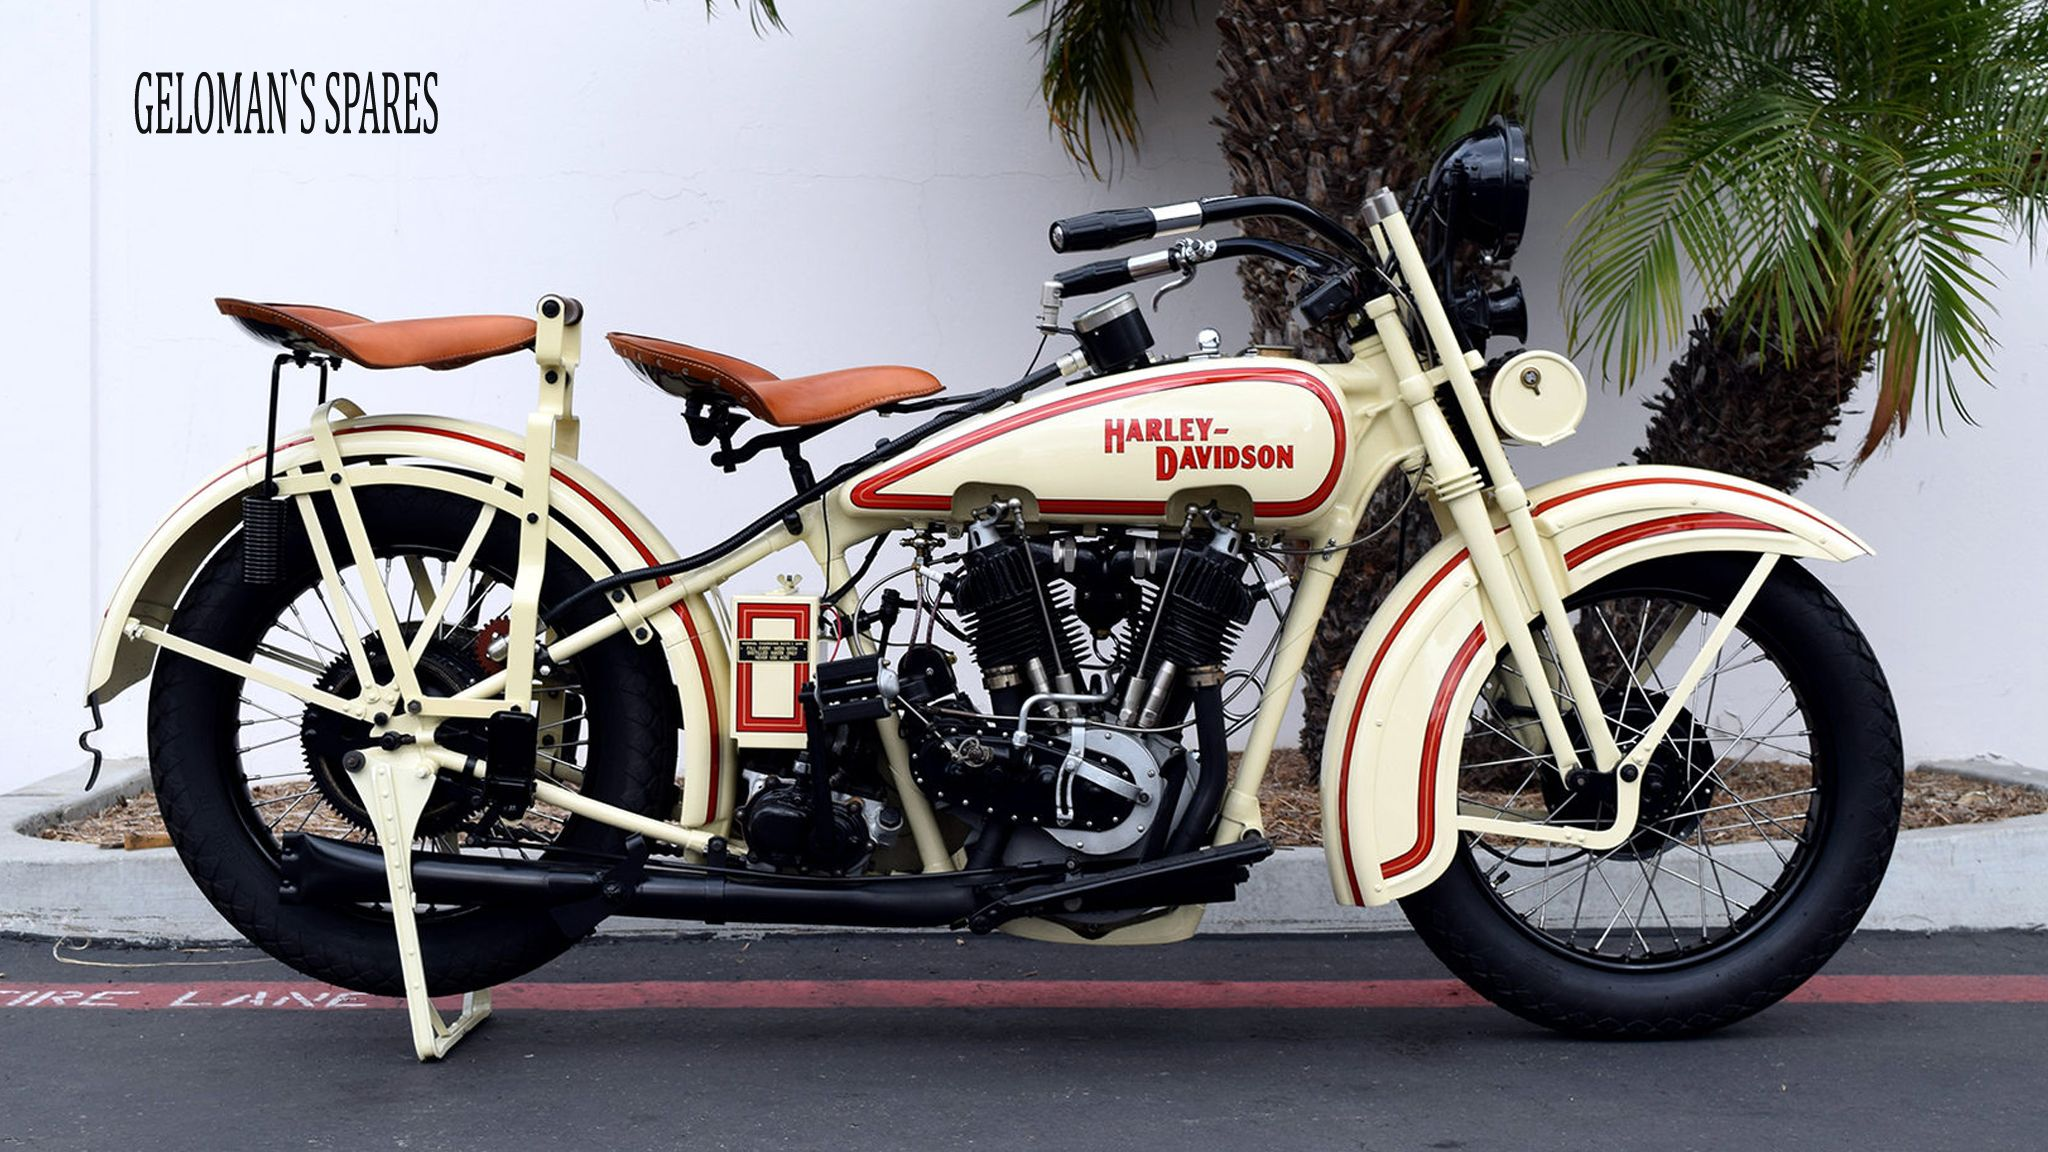 Excelsior Motorcycle Parts In 2020 Henderson Motorcycle Harley Davidson Excelsior Motorcycle